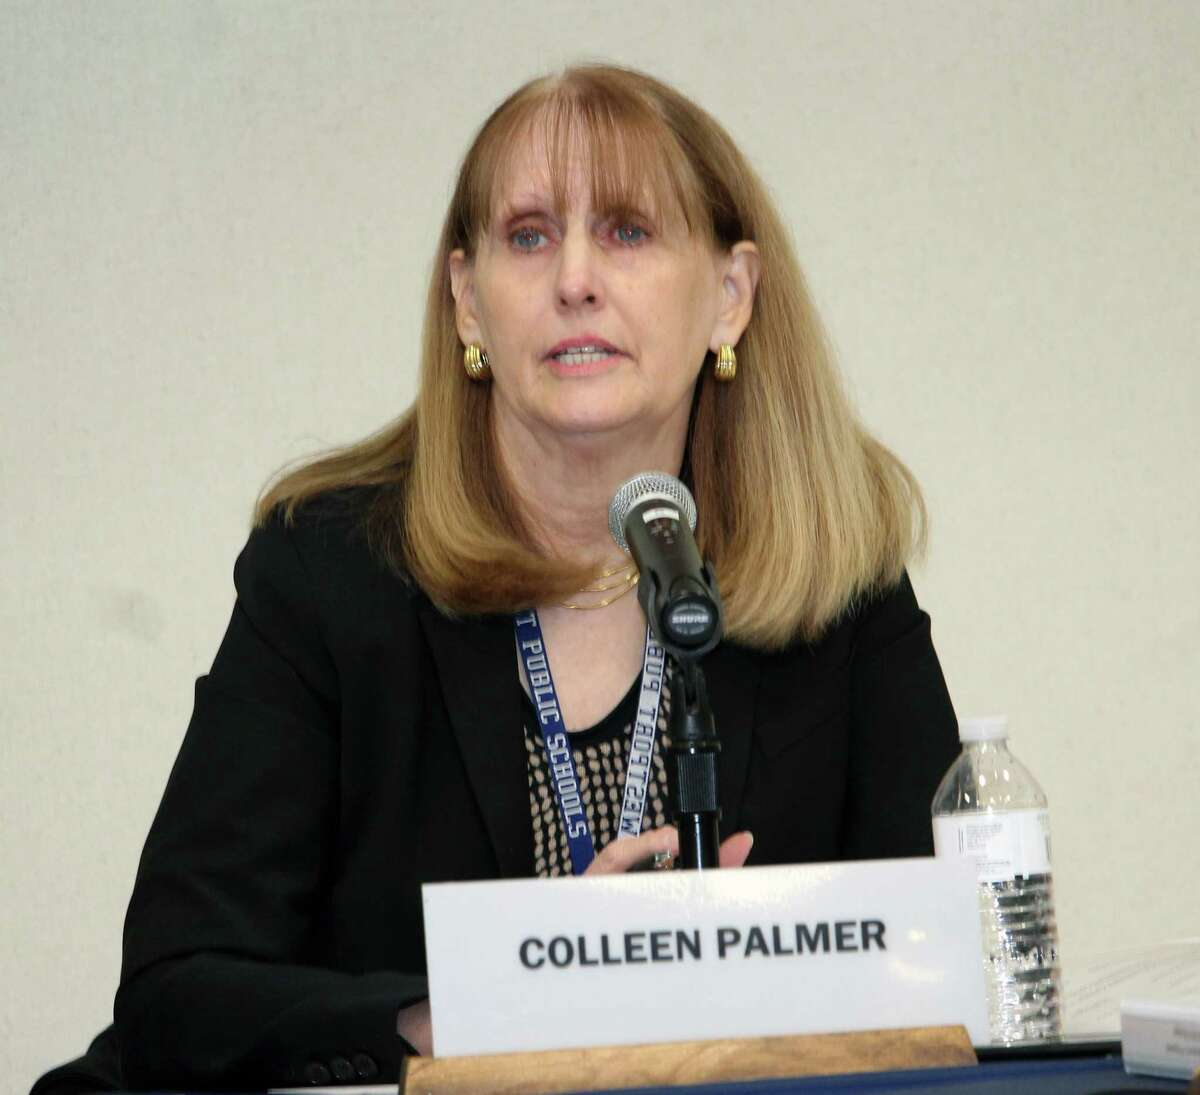 Superintendent of Schools Colleen Palmer responds to allegations that the district mishandled sexual assault complaints at the Jan. 29, 2018 meeting of the Board of Education in Westport, Conn.